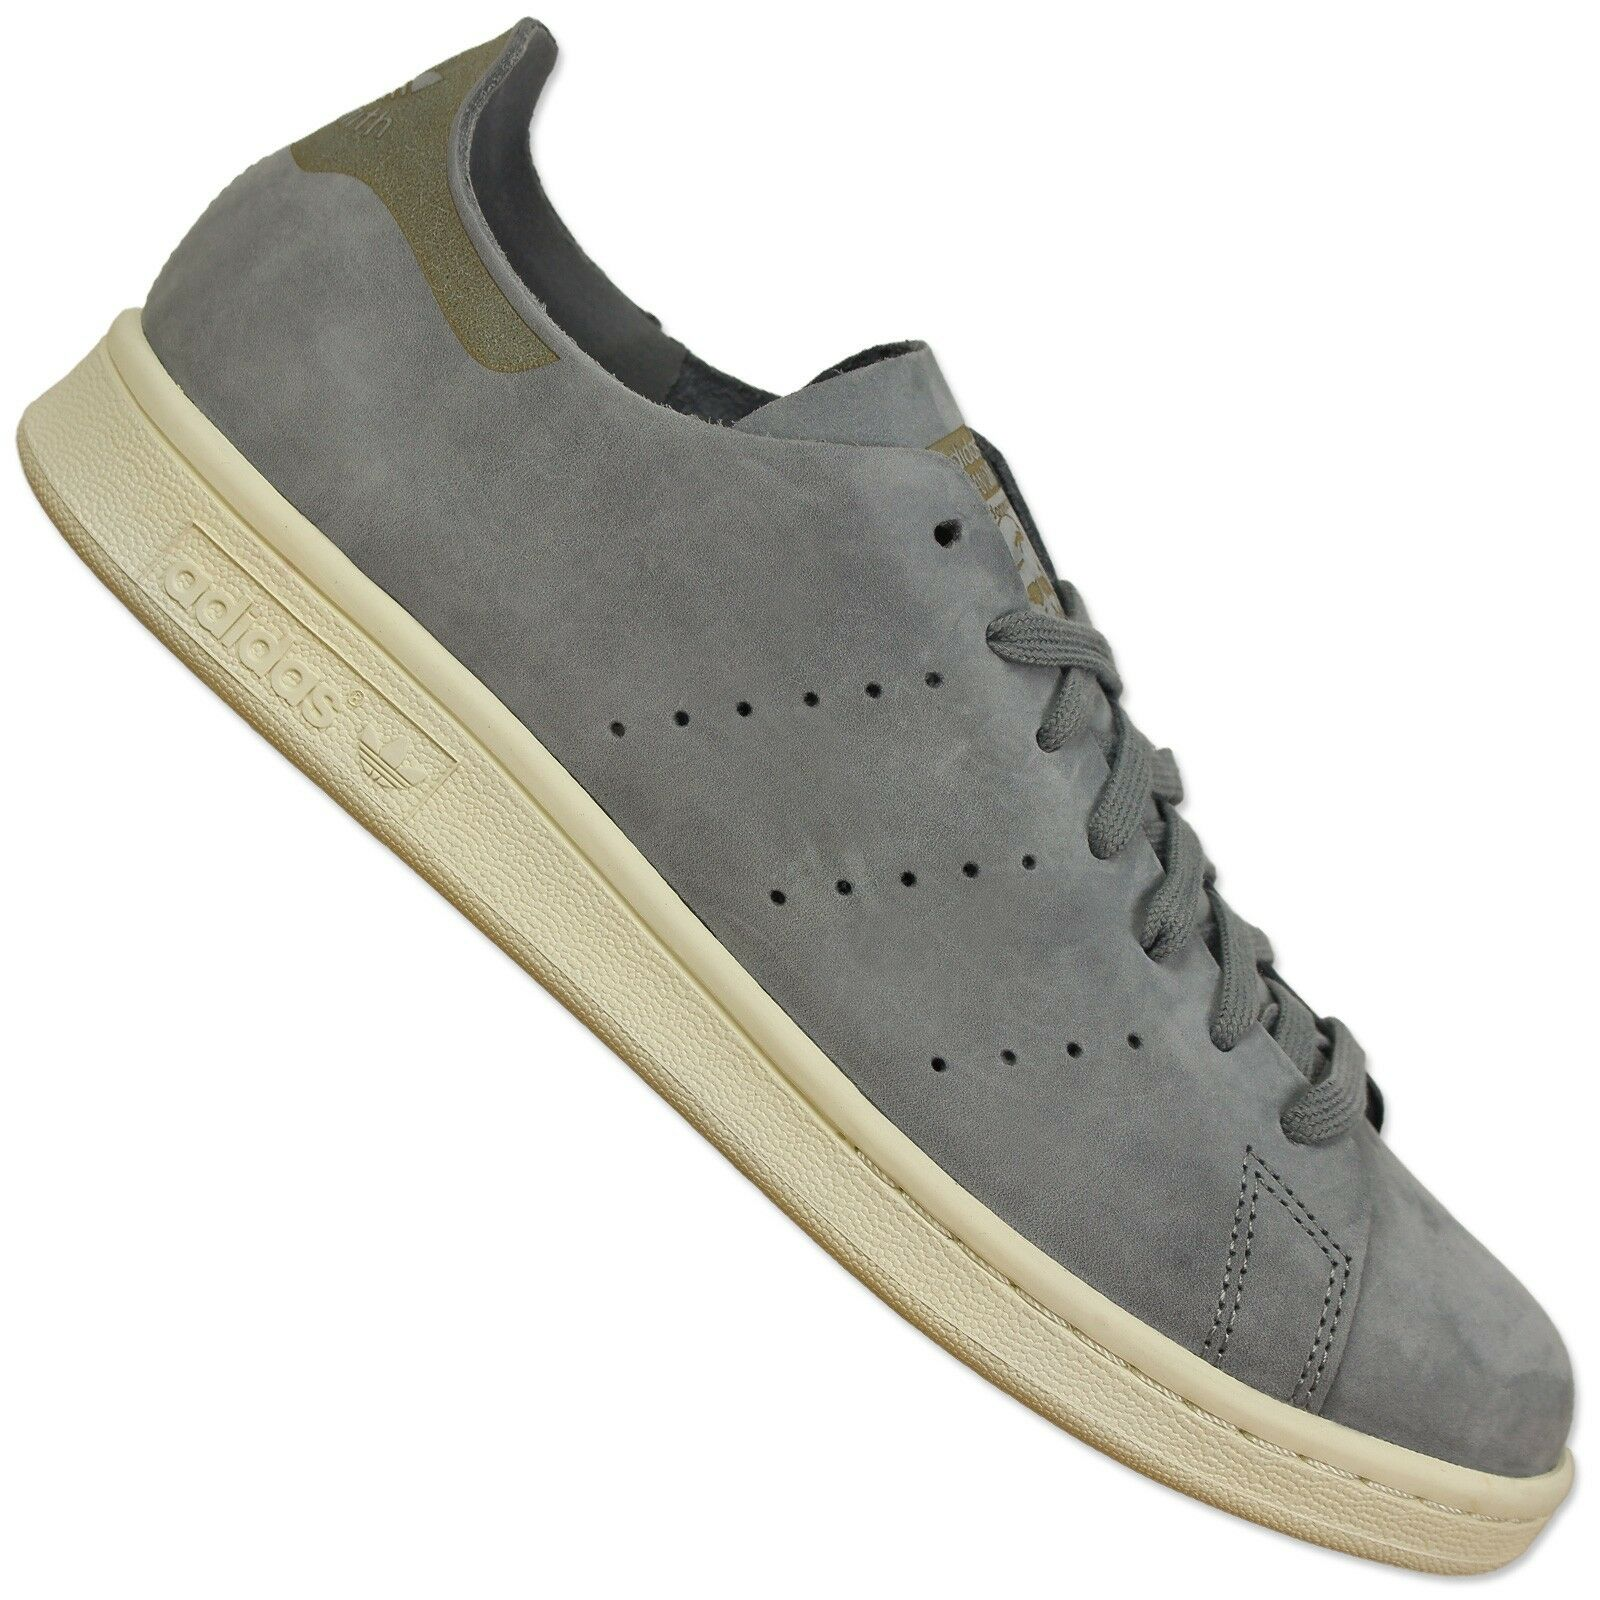 Adidas Originals Stan Smith s79465 Clean Cuir Basket s79465 Smith GRIS Chaussures 36 2 3 7d6ab7